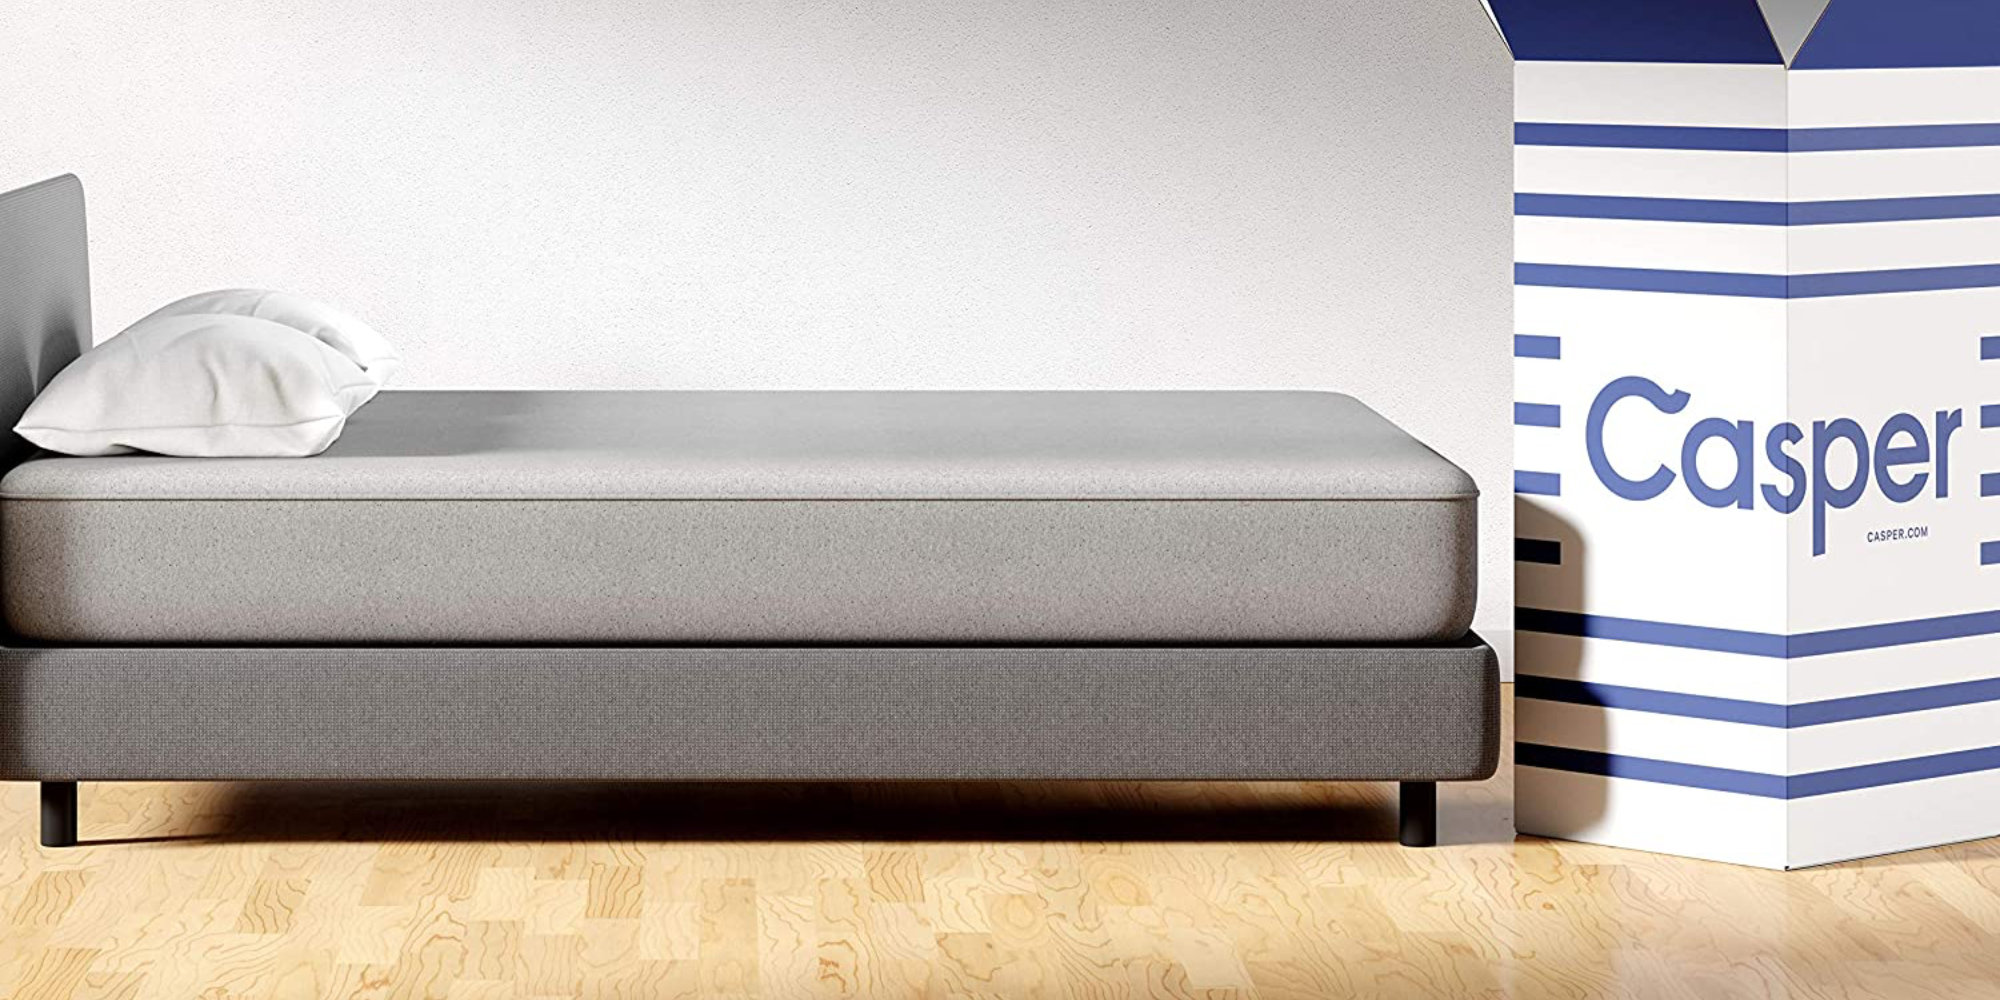 Black Friday Unleashes New Casper Mattress Lows From 316 At Amazon Up To 459 Off 9to5toys